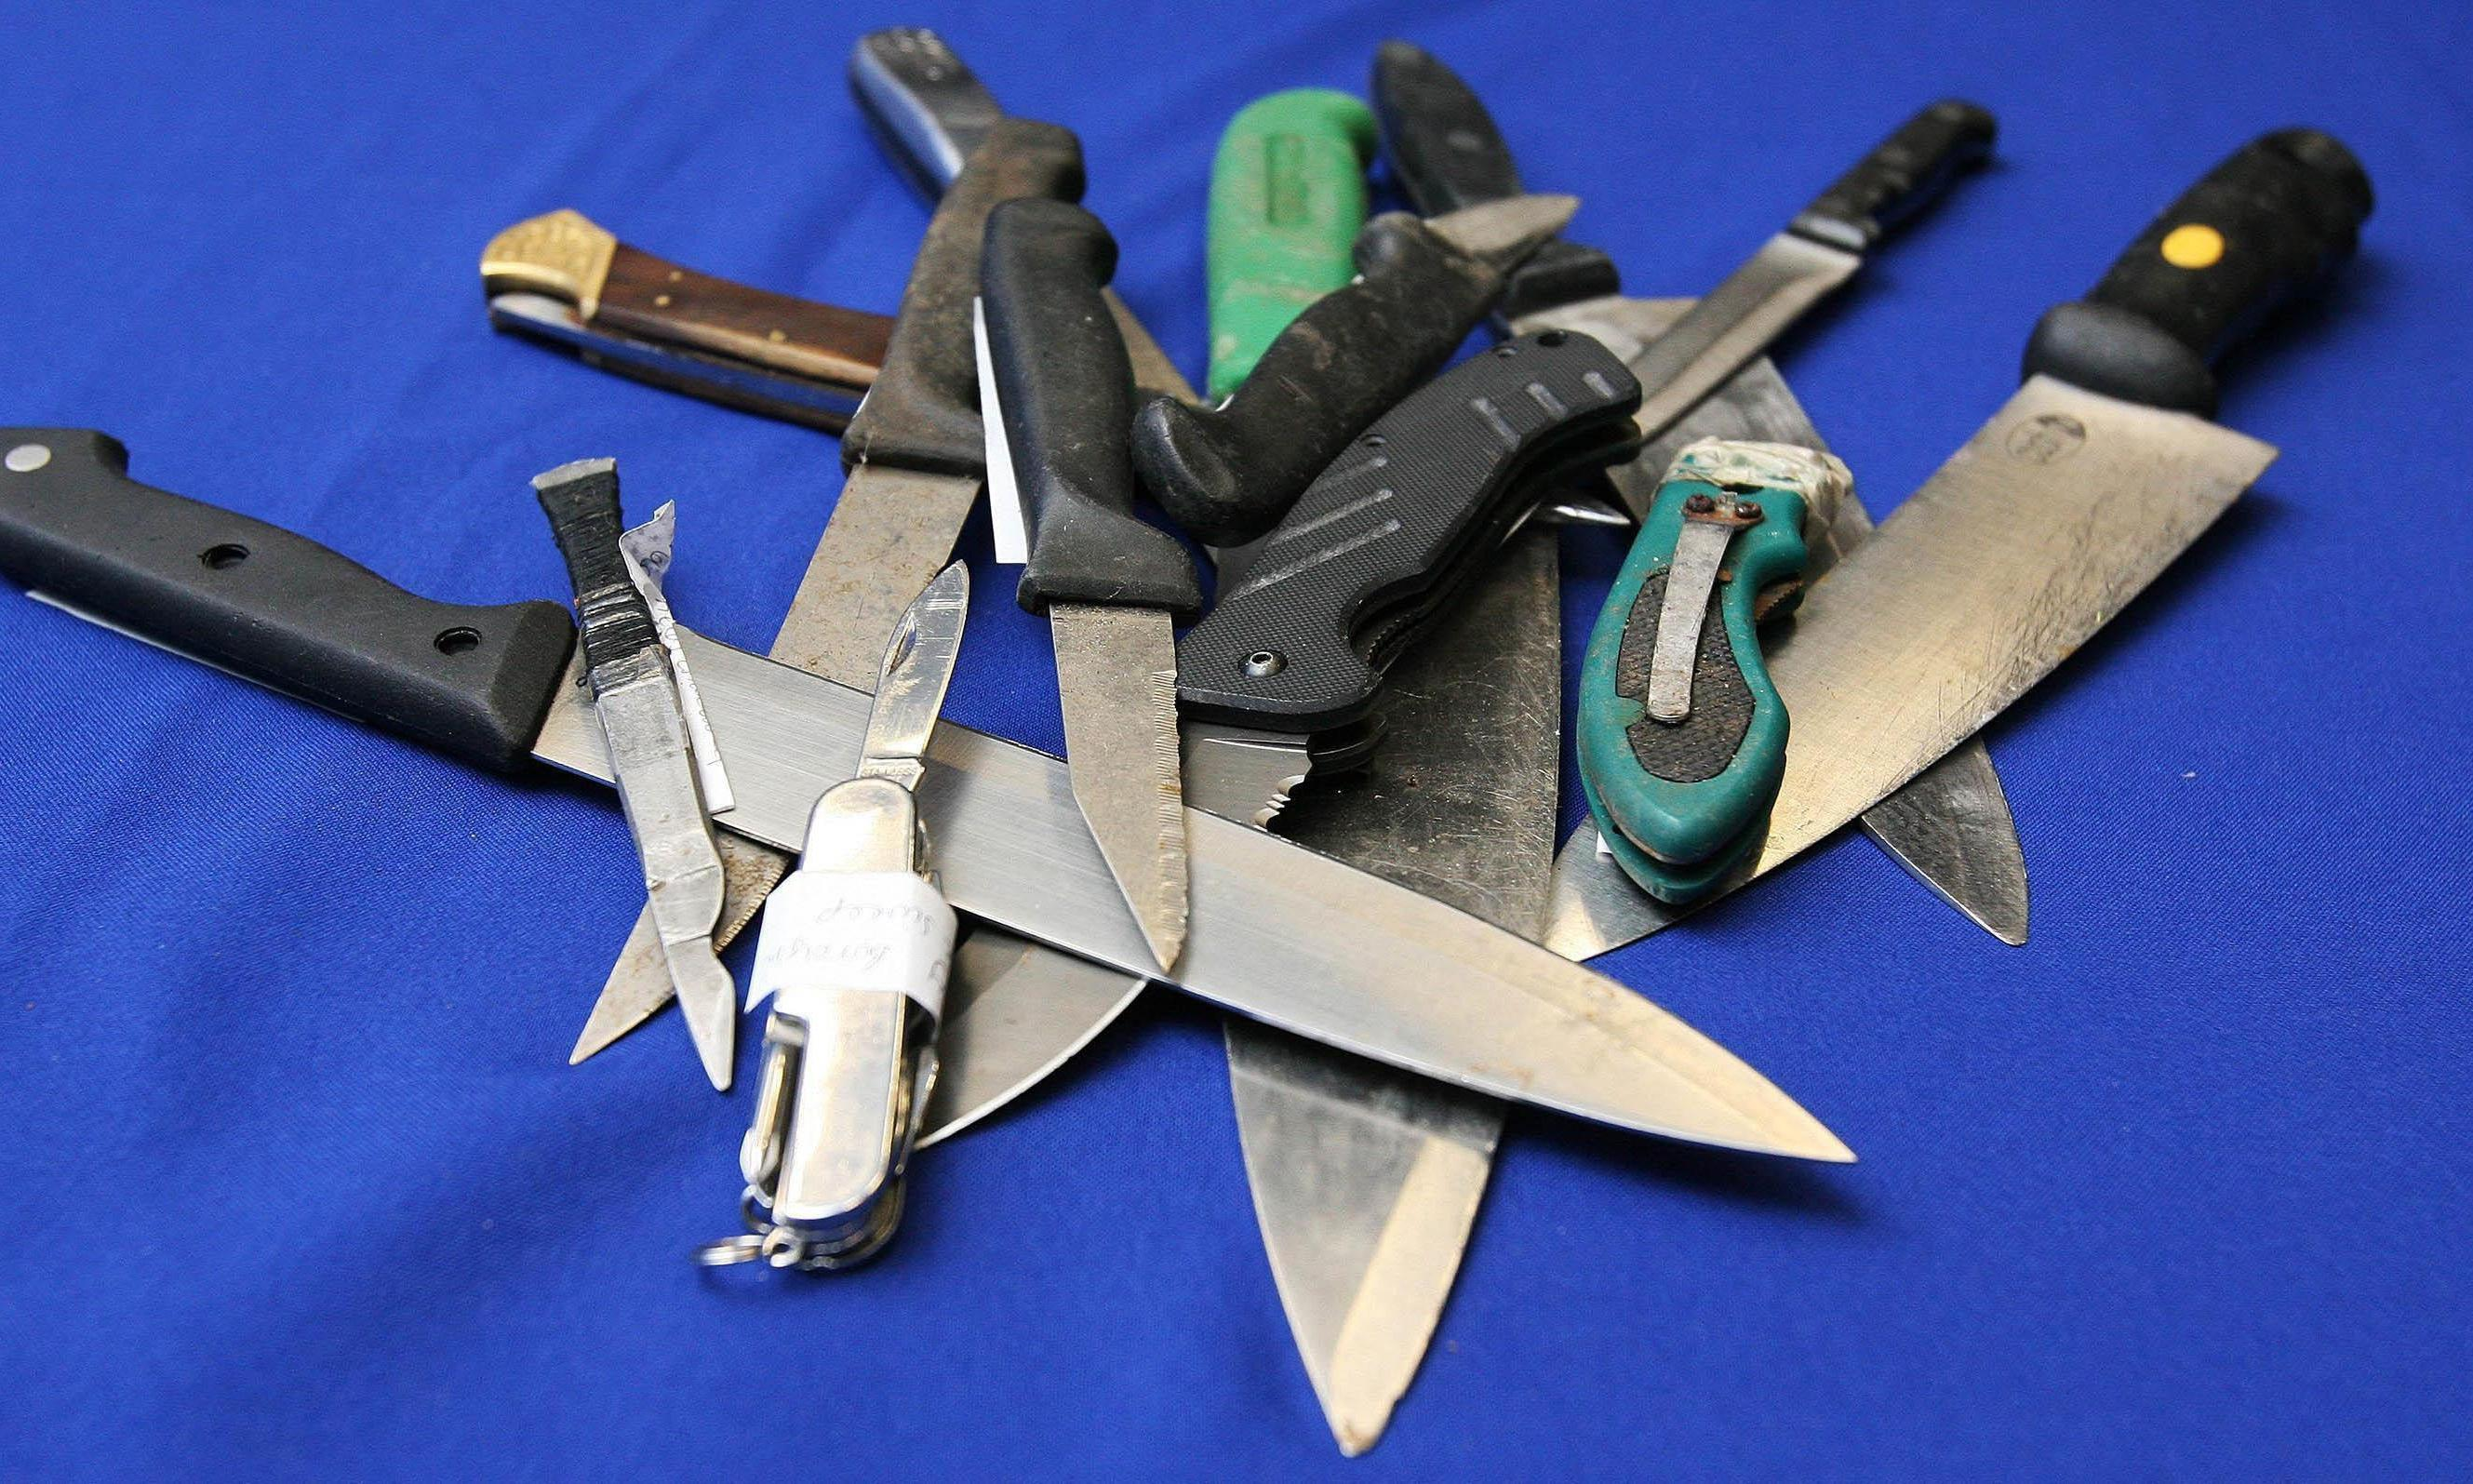 Blunt knives to stop domestic violence? What next – stab vests in the kitchen?